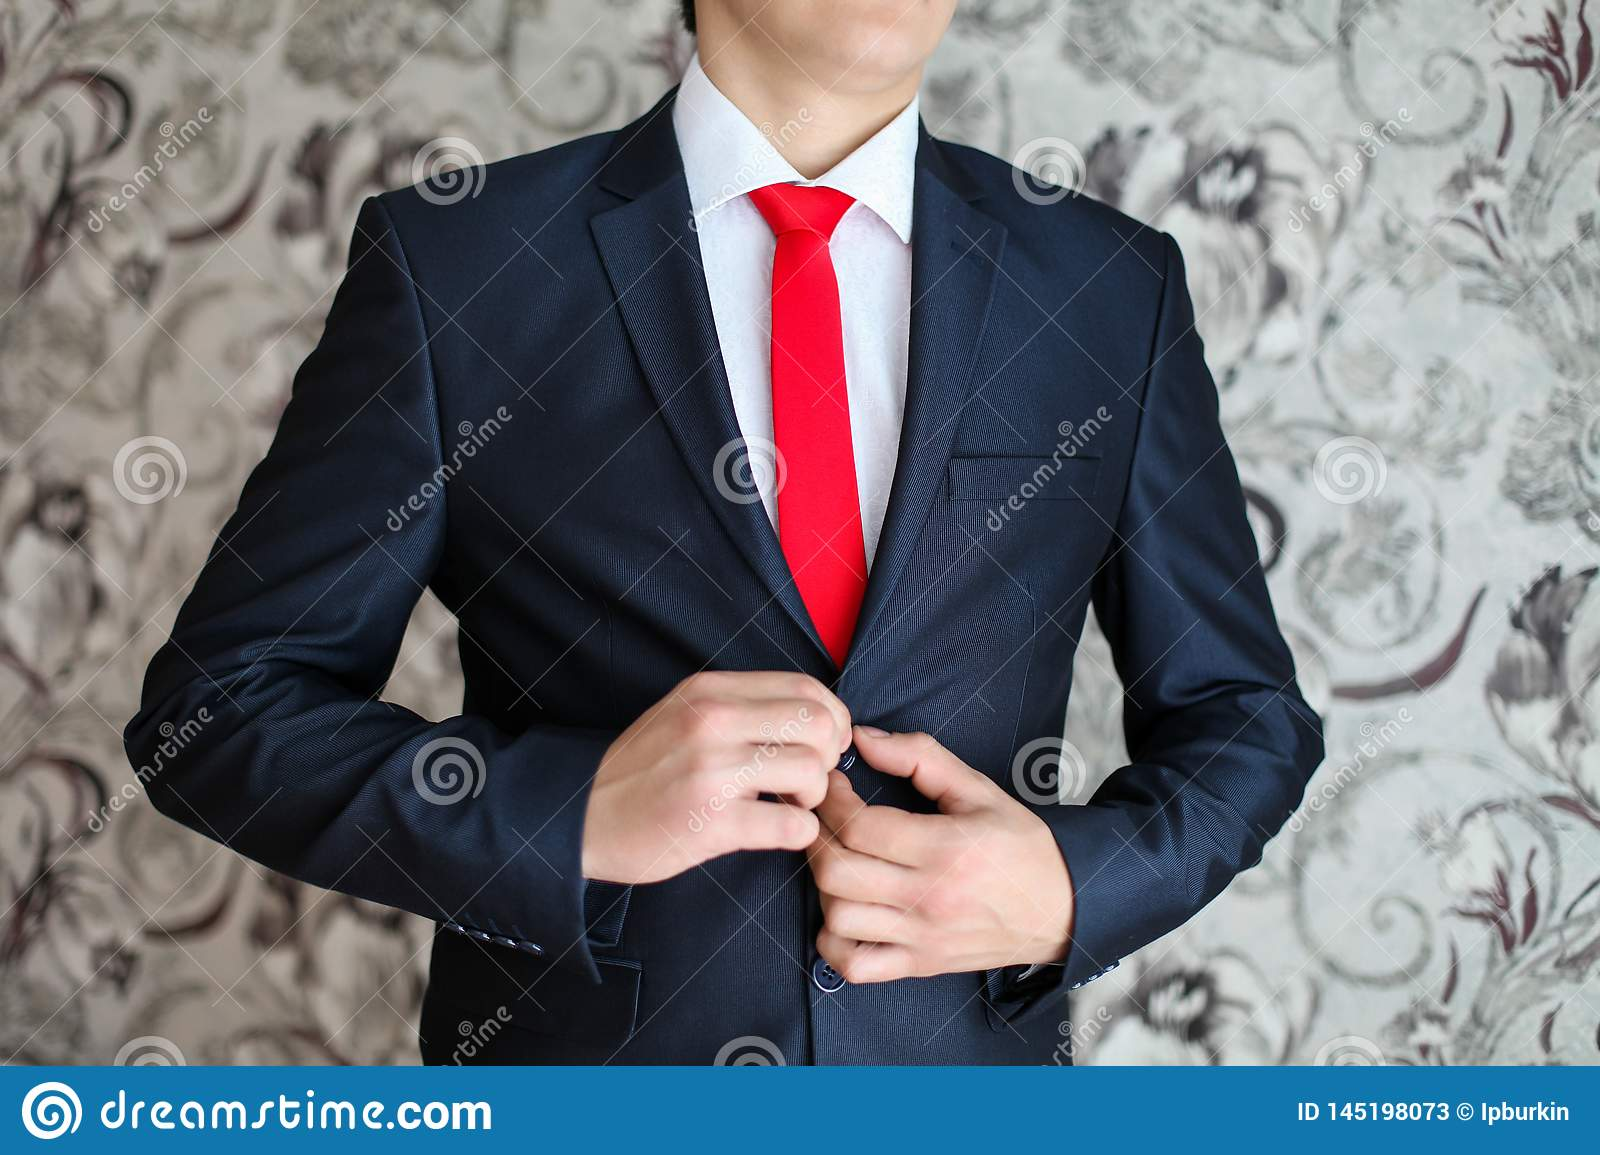 Businessman in black suit and a red tie. Smart casual outfit. Man getting ready for work. groom in a jacket, the groom fastens his